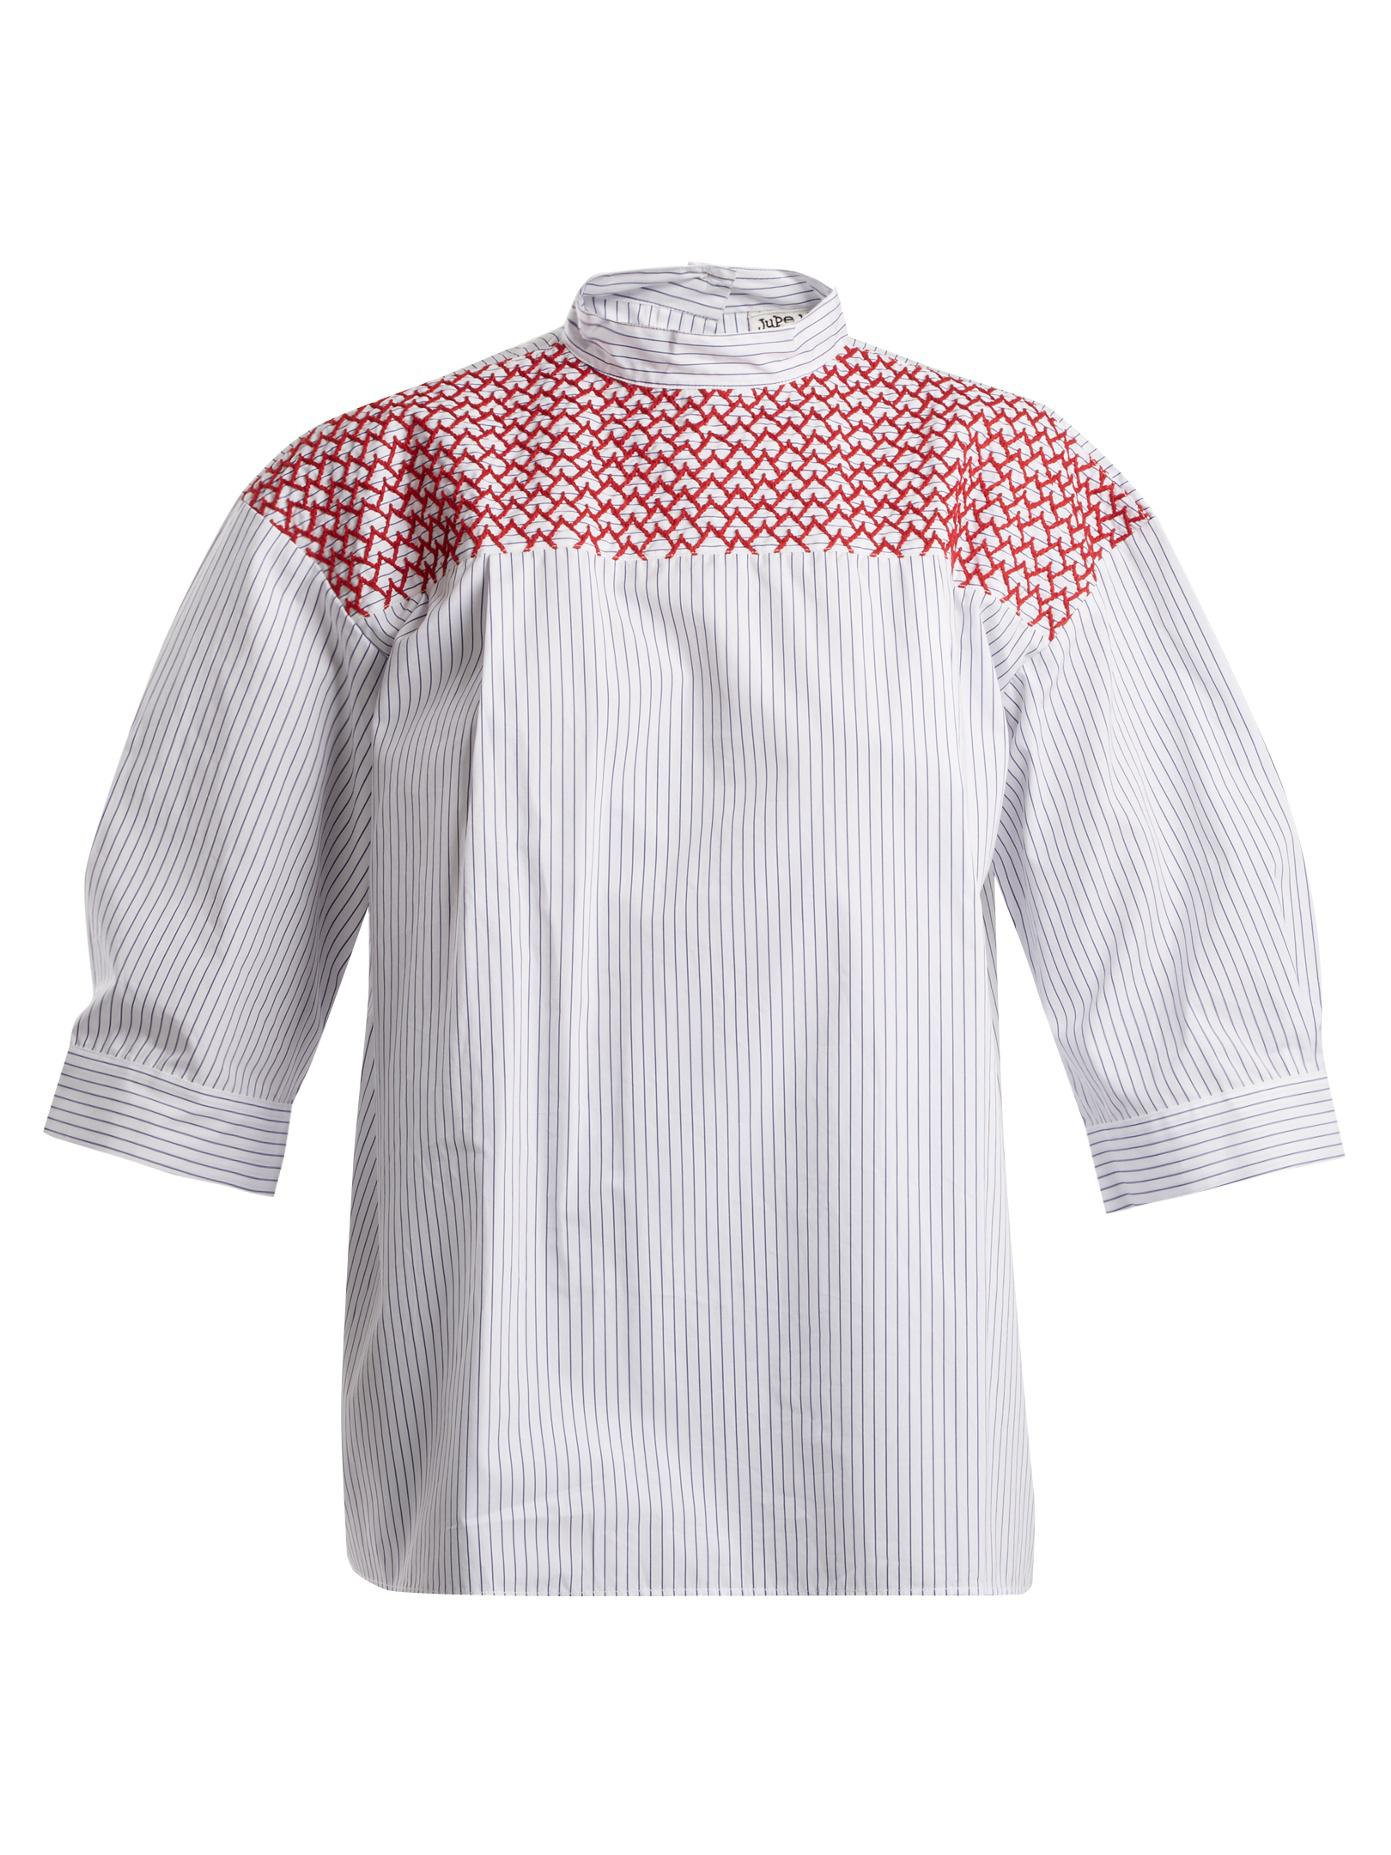 Chao embroidered striped cotton top Jupe by Jackie Cheap With Mastercard 2v7zEbssdw